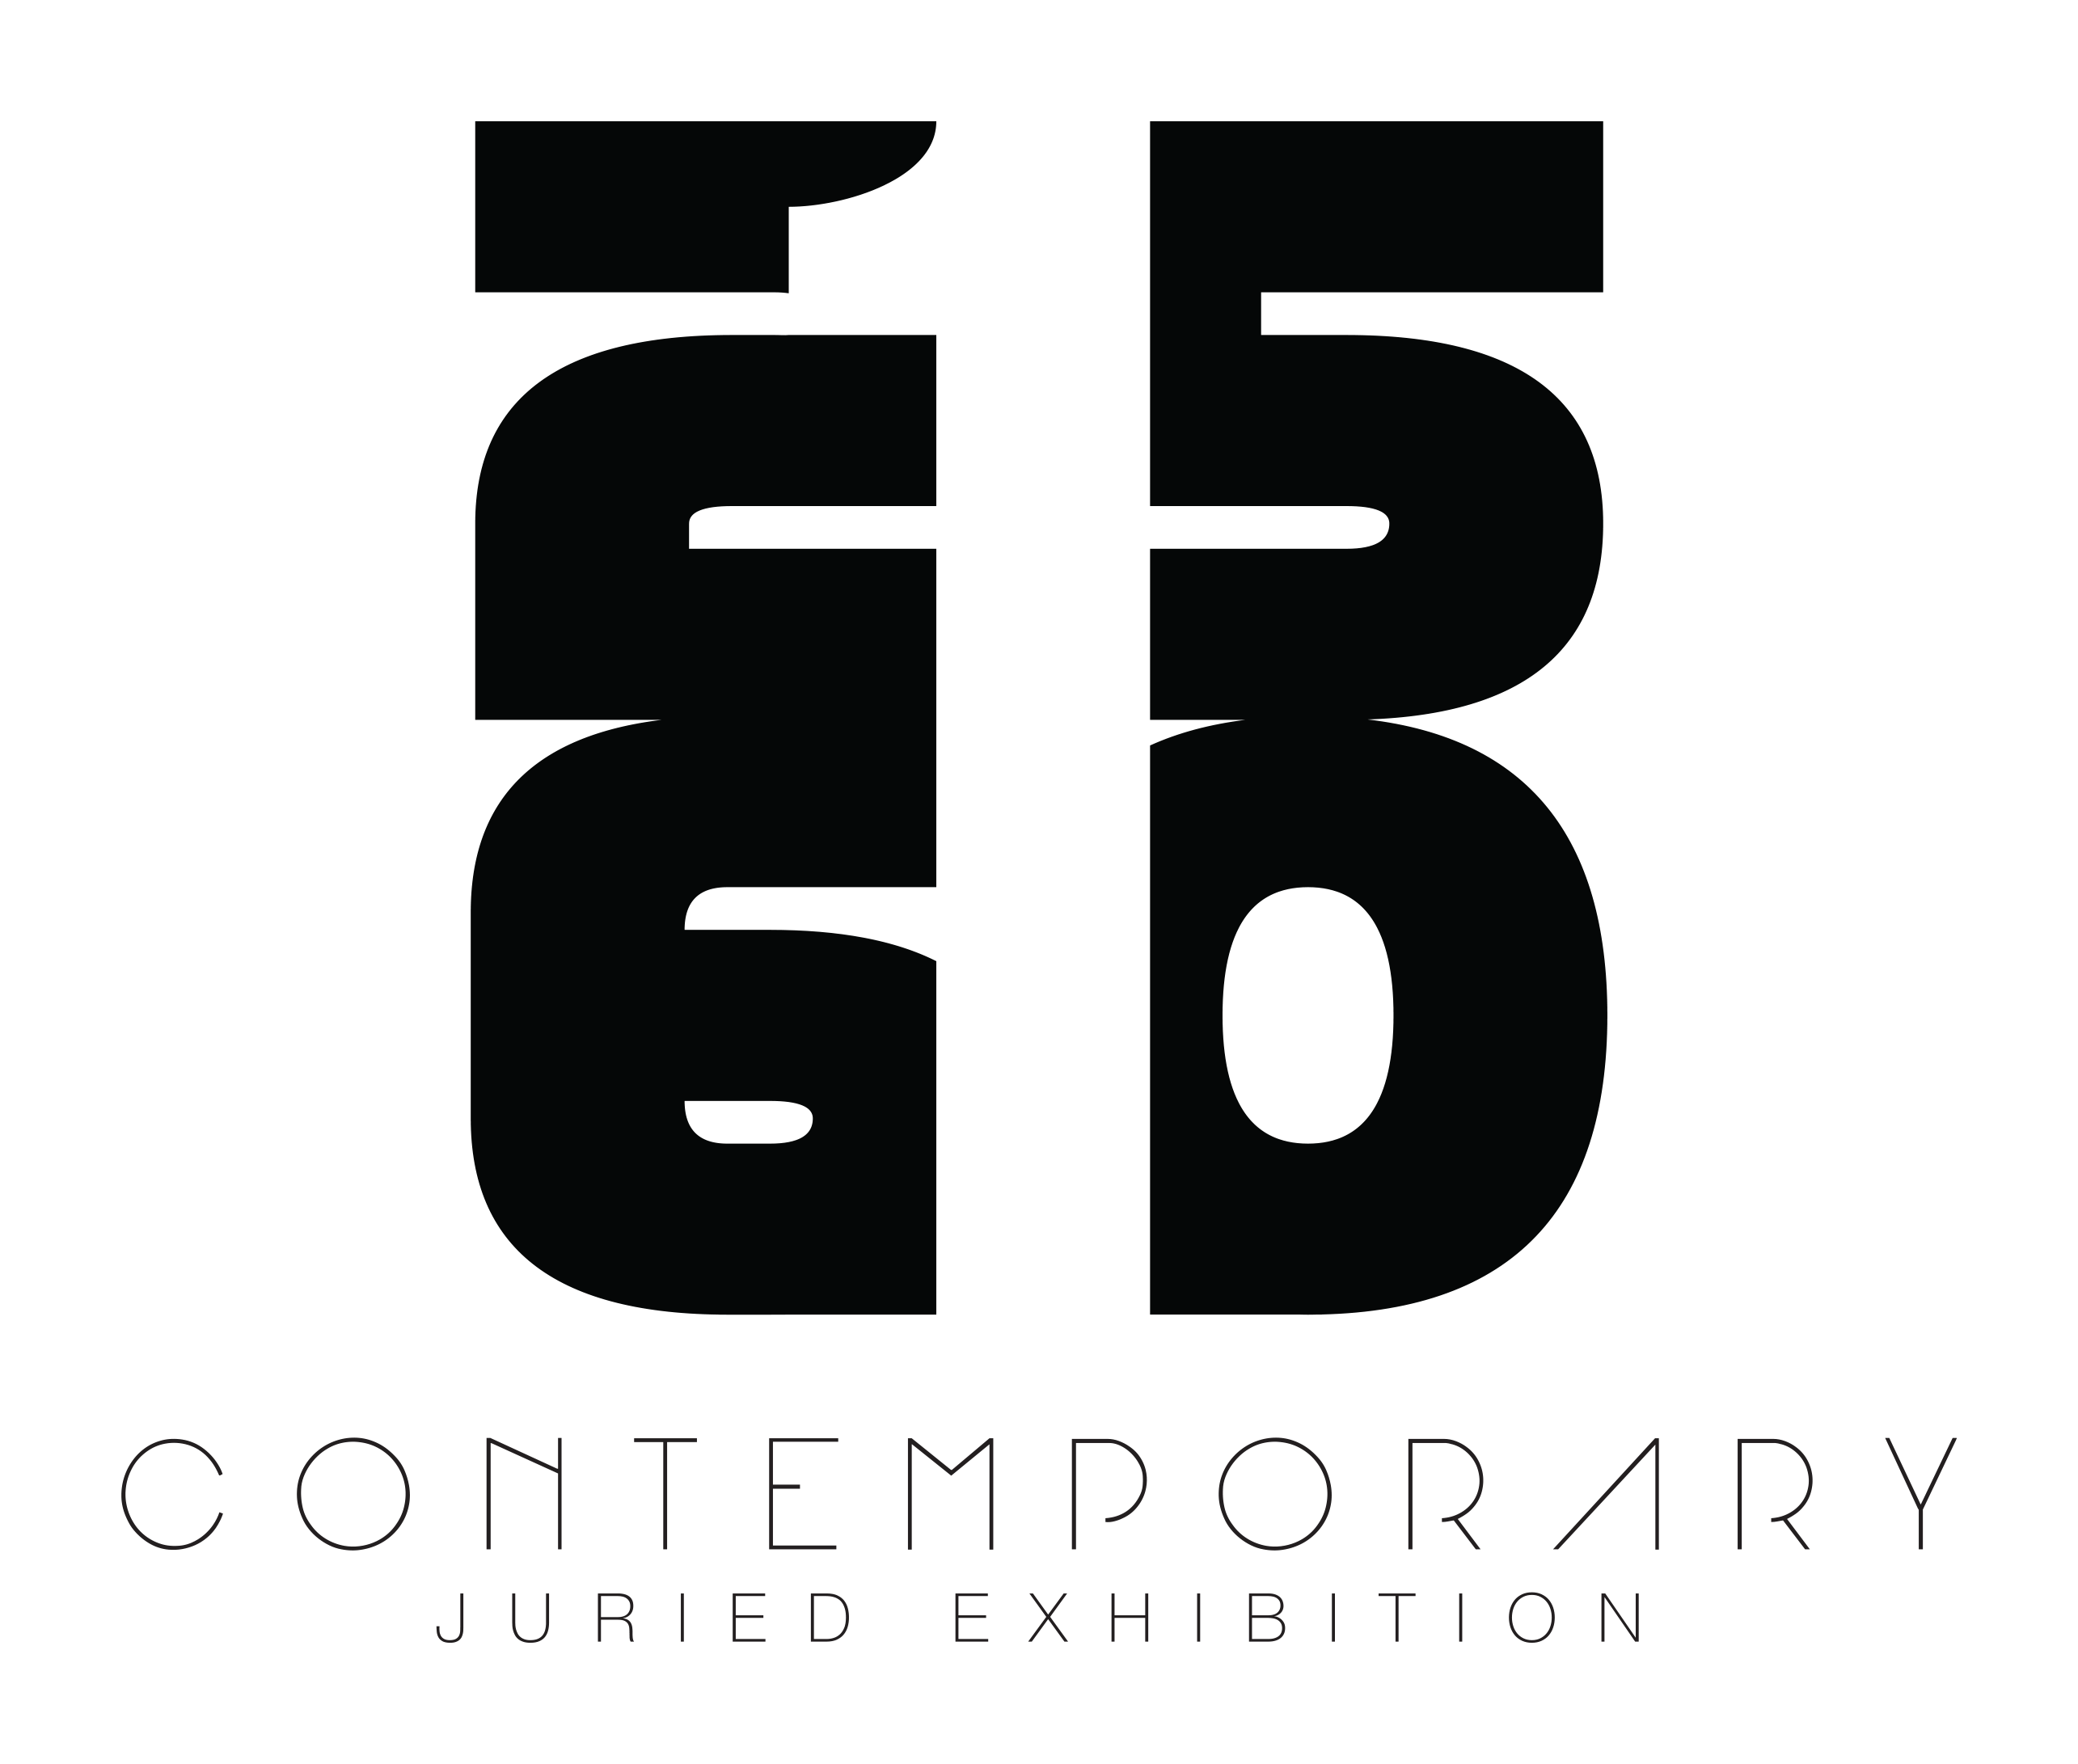 215 | 610 Contemporary Juried Exhibition - Delaware County For Delaware Community College Academic Calendar